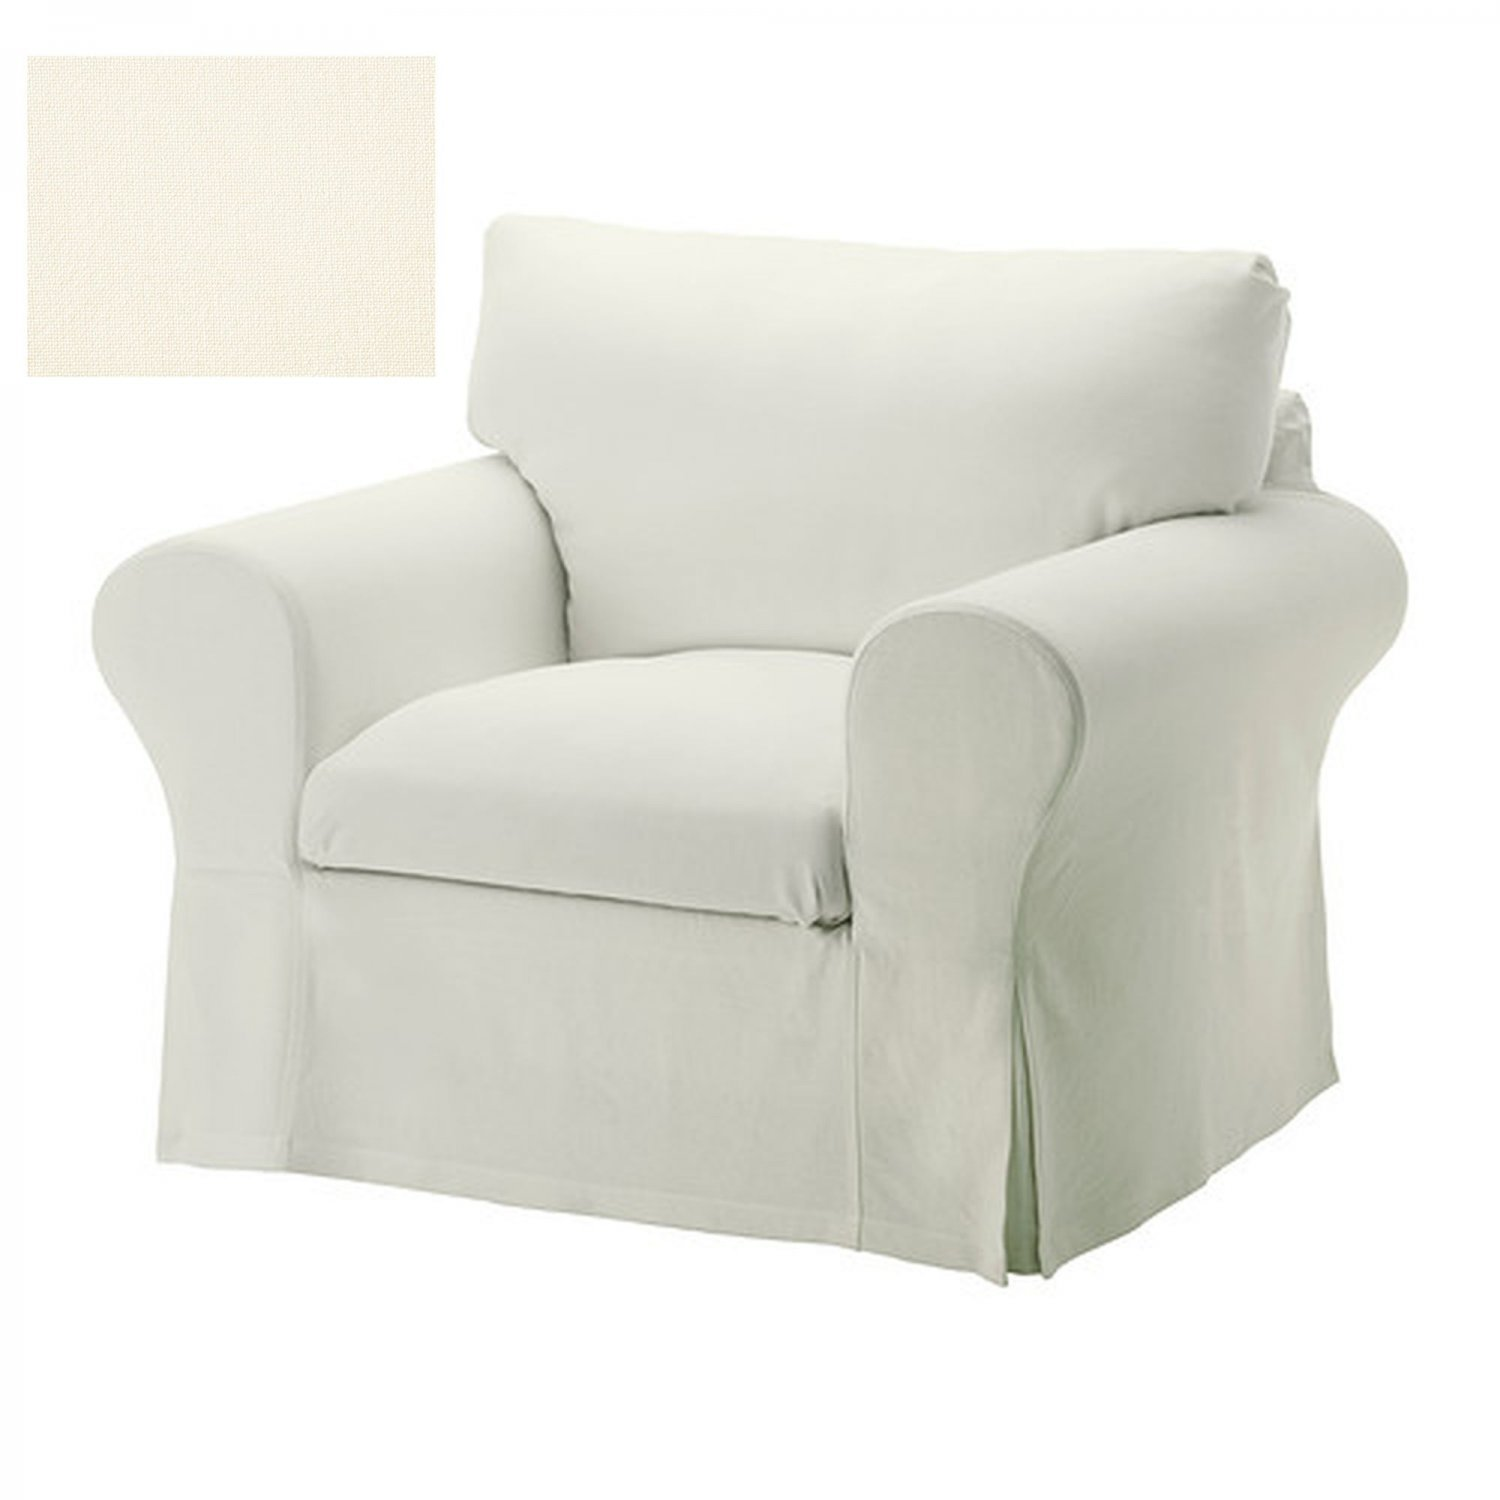 sex chairs suppliers salon shampoo bowls and ikea ektorp armchair slipcover chair cover stenasa white